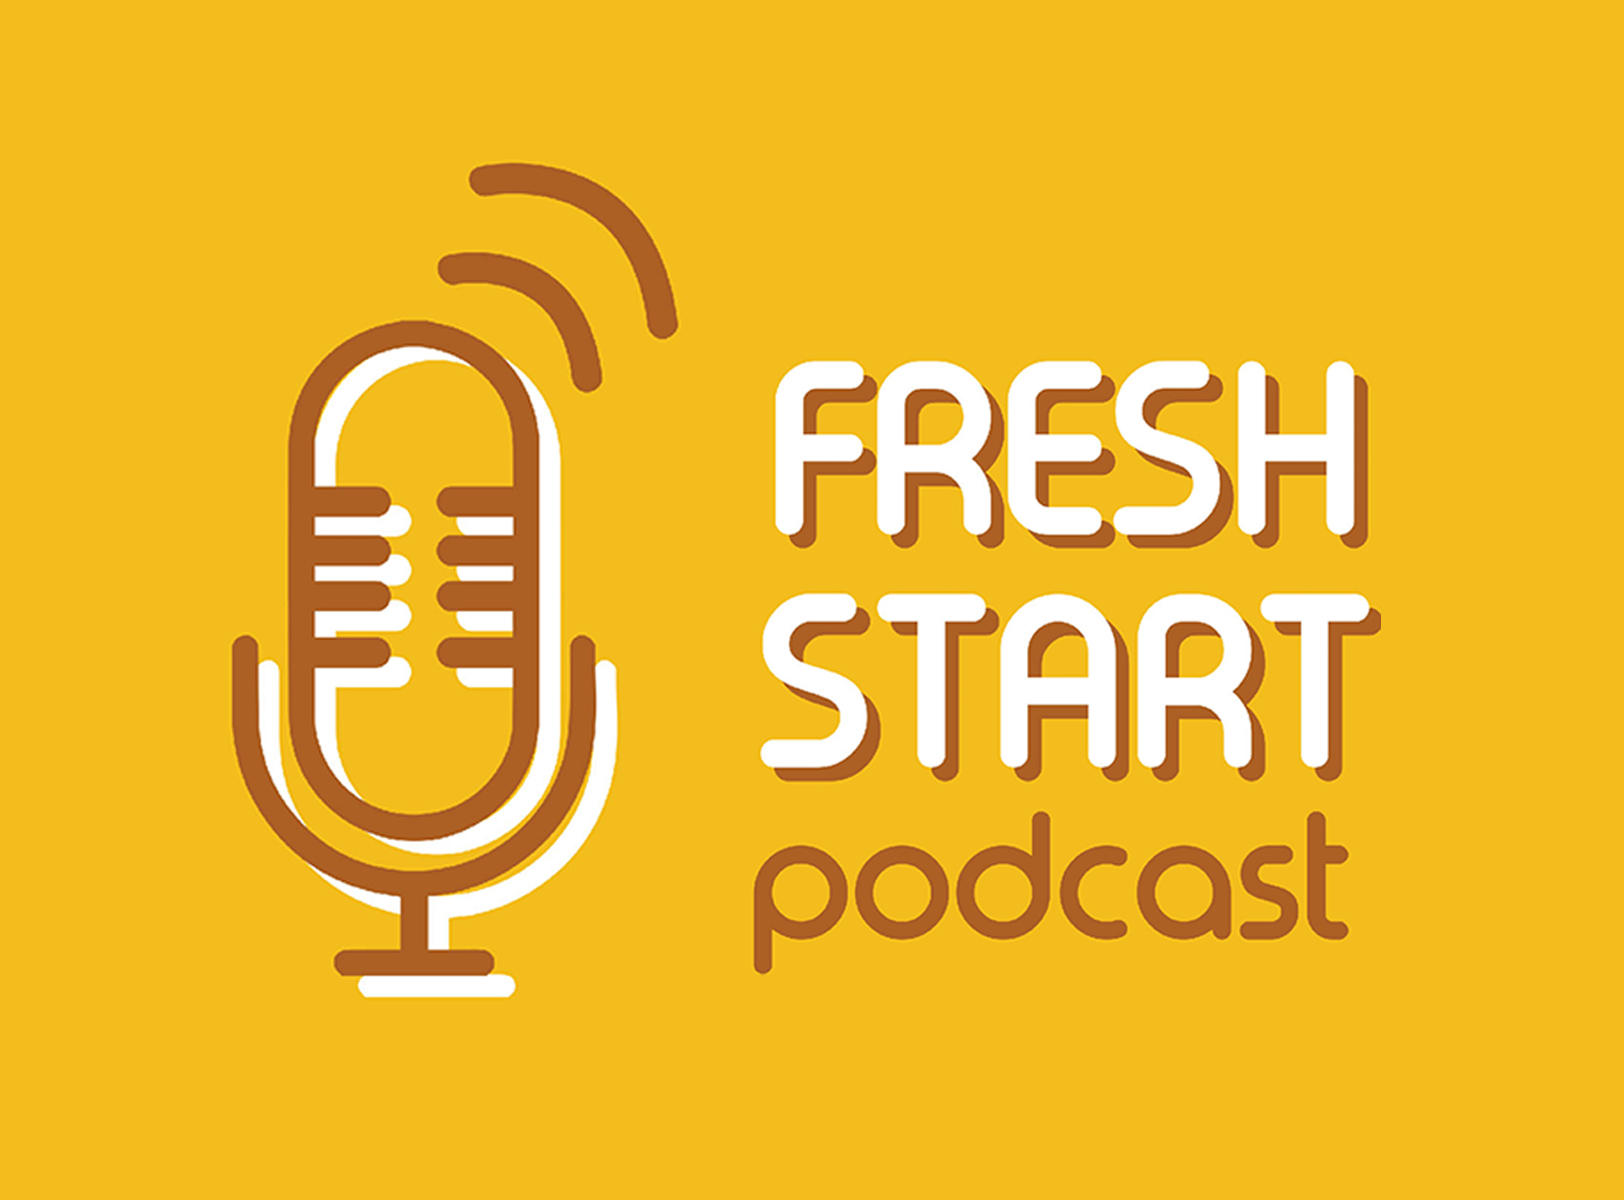 Fresh Start: Podcast News (6/7/2019 Fri.)